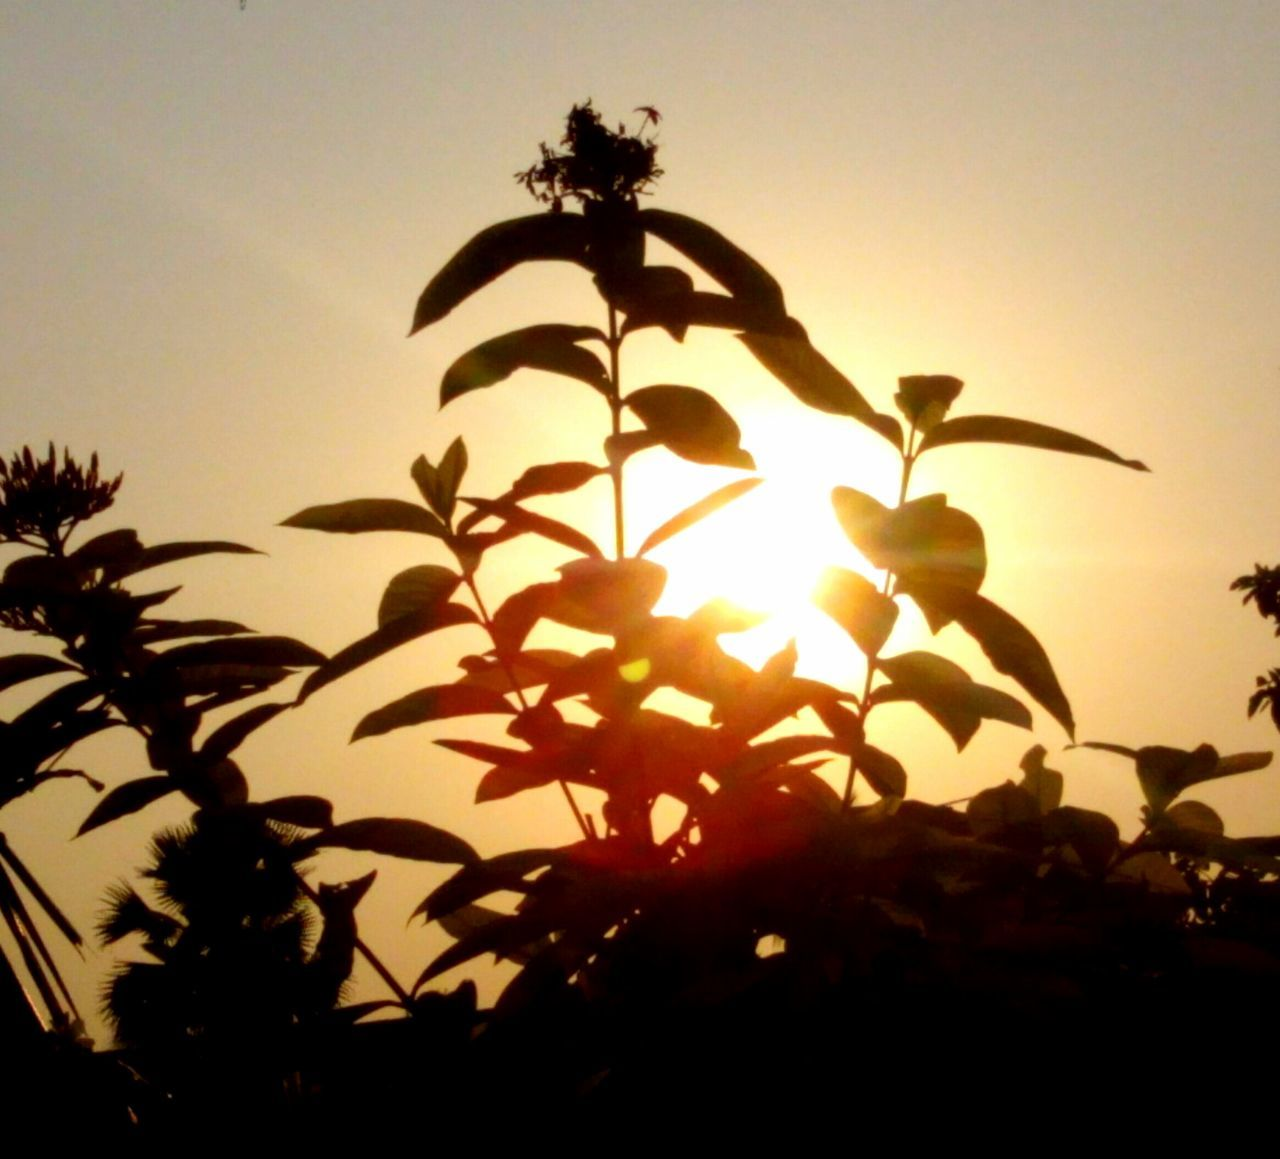 Low Angle View Of Plants Against Sky At Sunset